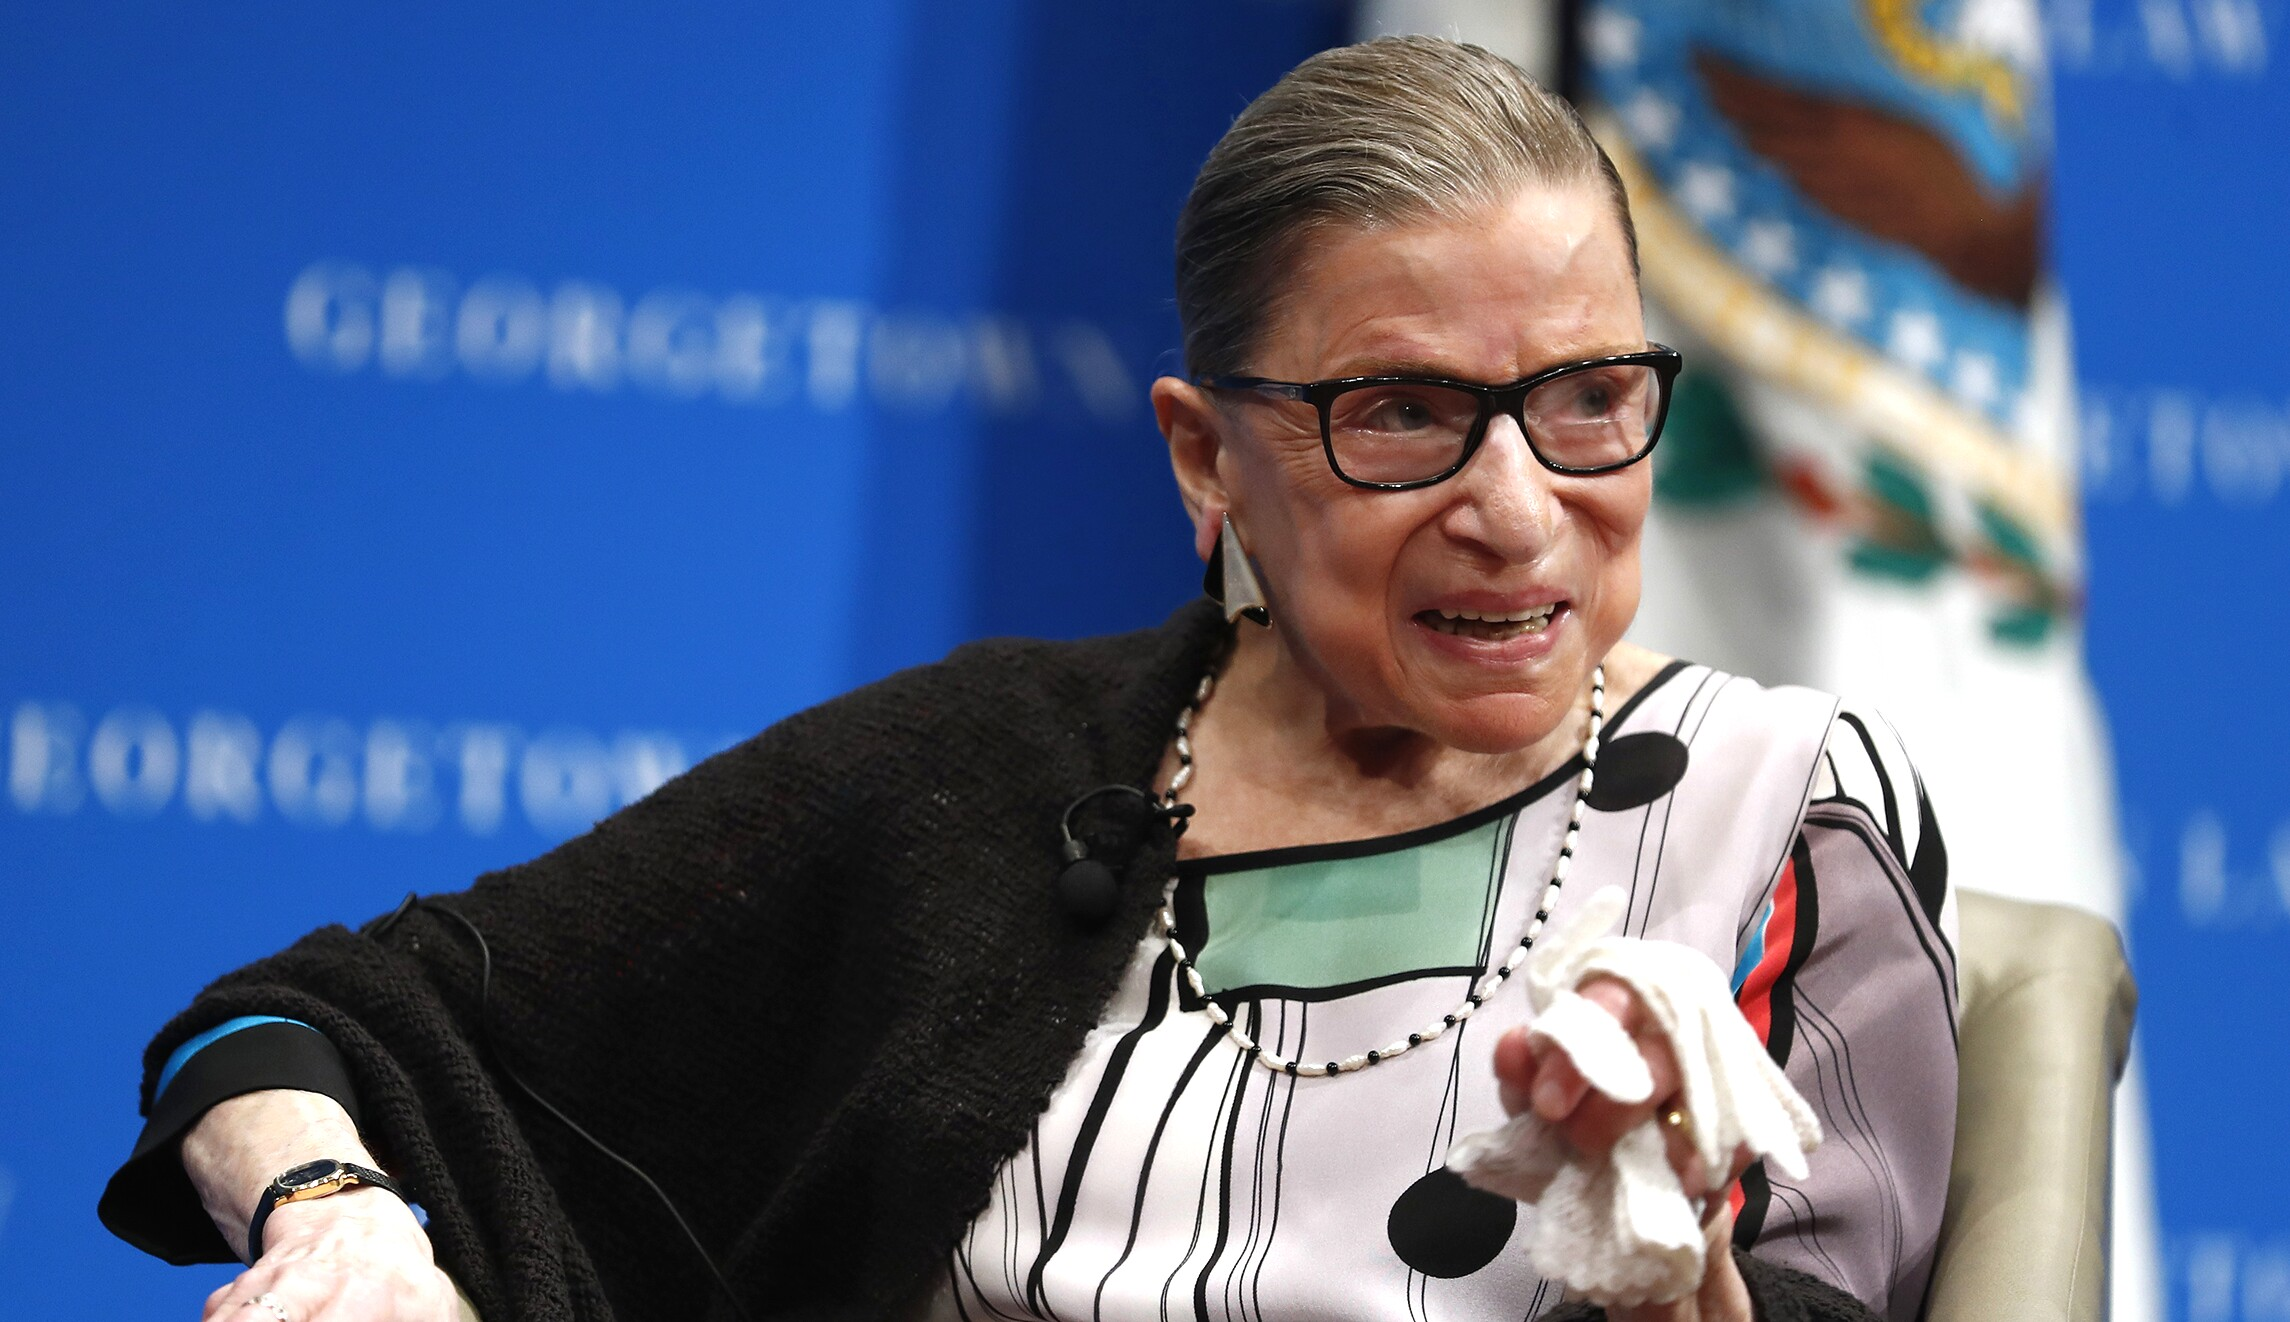 Supreme Court Justice Ruth Bader Ginsburg speaks at the Georgetown University Law Center campus in Washington, D.C.